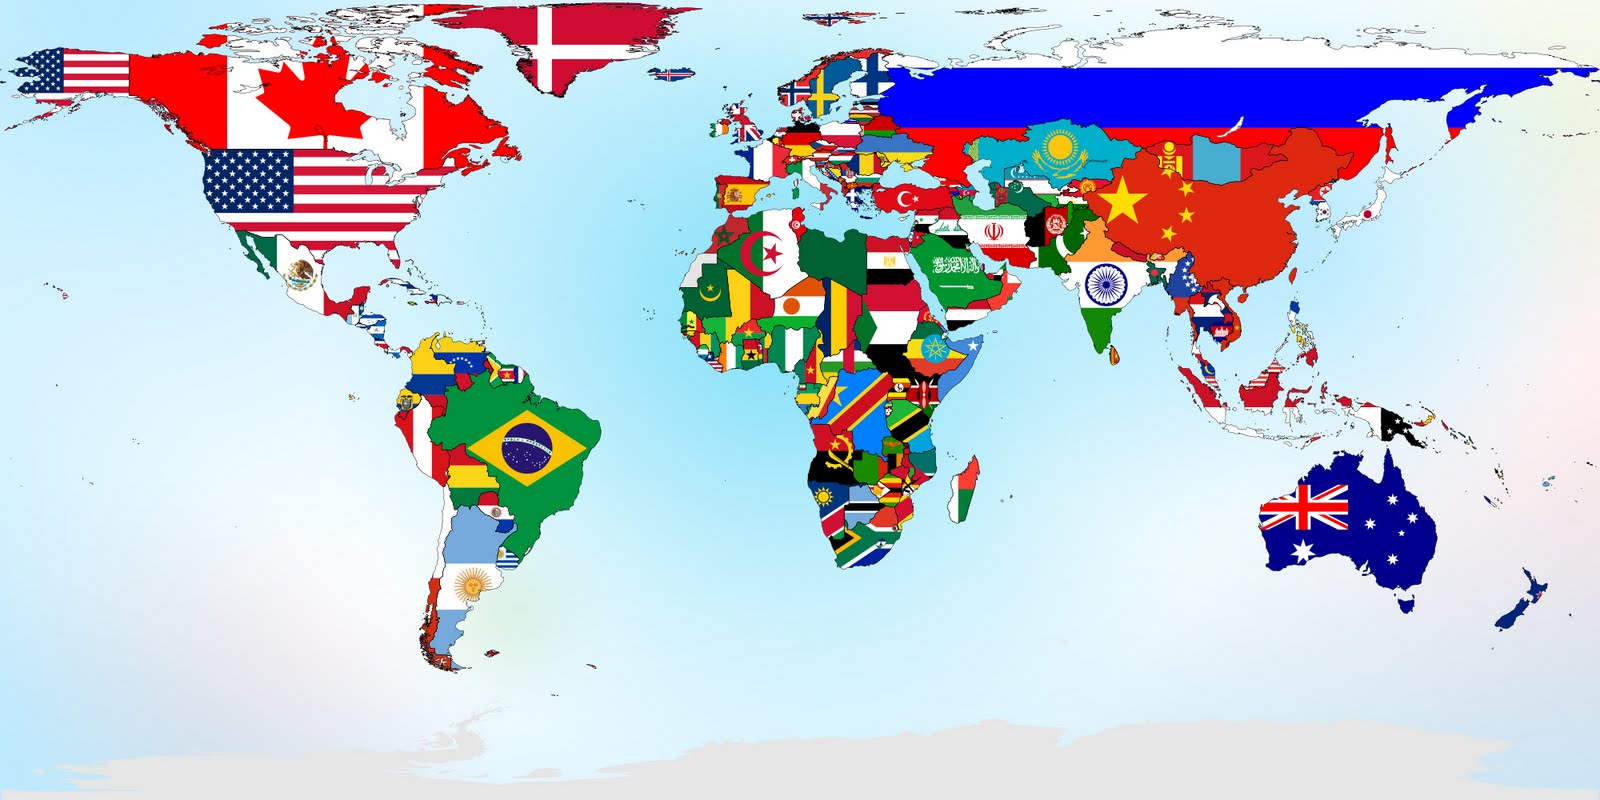 http://2.bp.blogspot.com/-k0og8mvW6Ac/TtfFGhSC26I/AAAAAAAAFNQ/GGZRkLn9b-g/s1600/World_Flag_Map_hd_wallpapers_wall_2012_httpmapwallpapers.blogspot.com.jpg